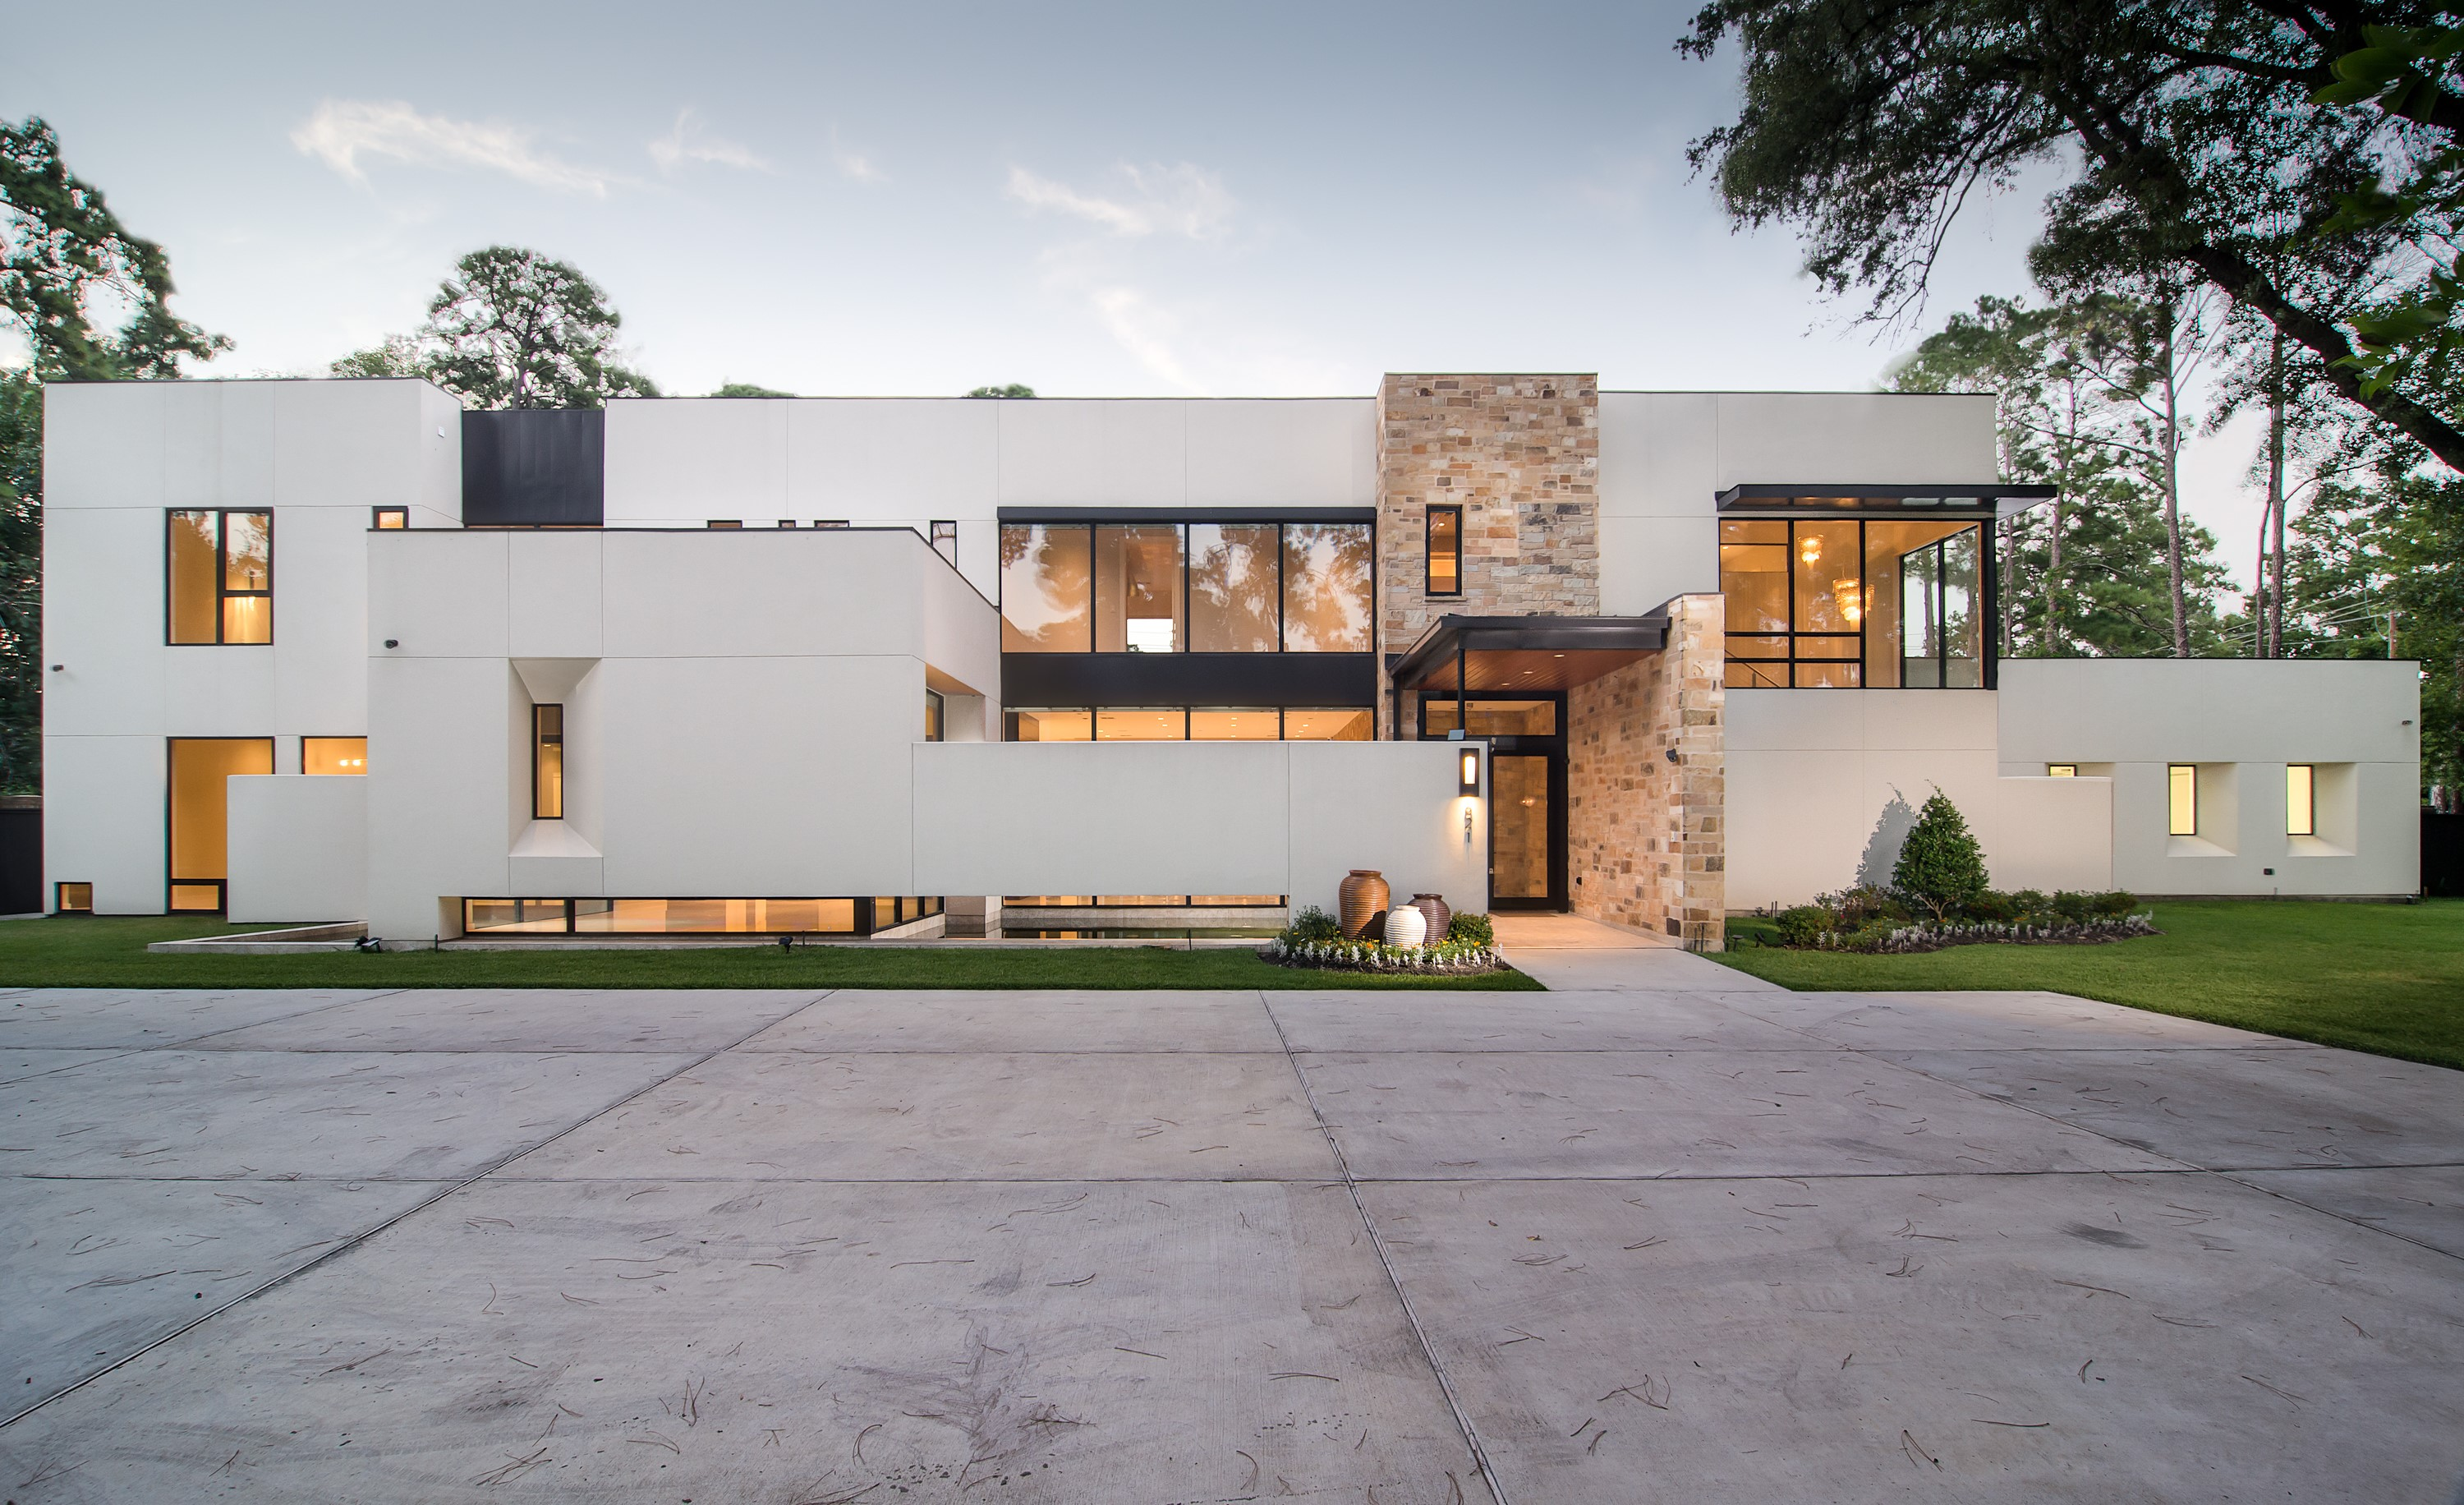 Modern home tours returns to houston on september 20th for Foto di case moderne esterni